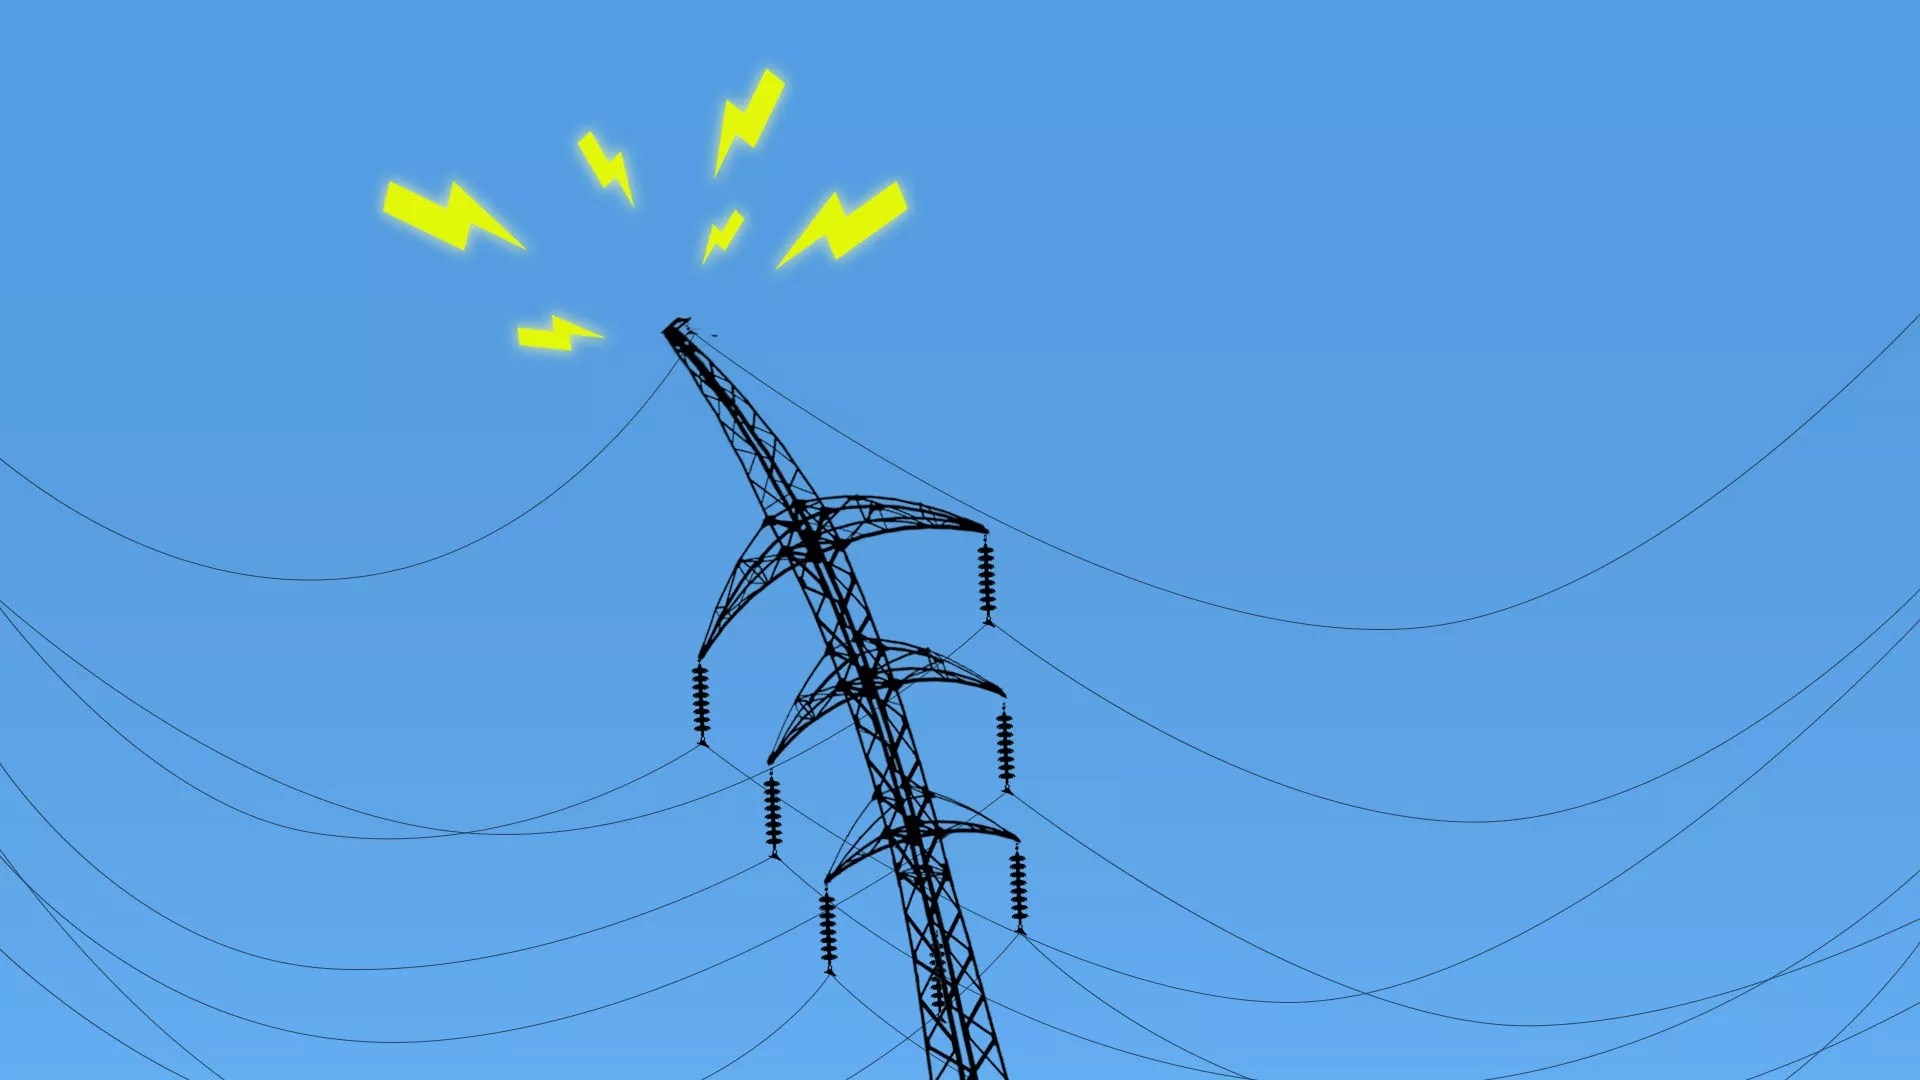 hight resolution of illustration of a power line struggling under the weight of electrical wires